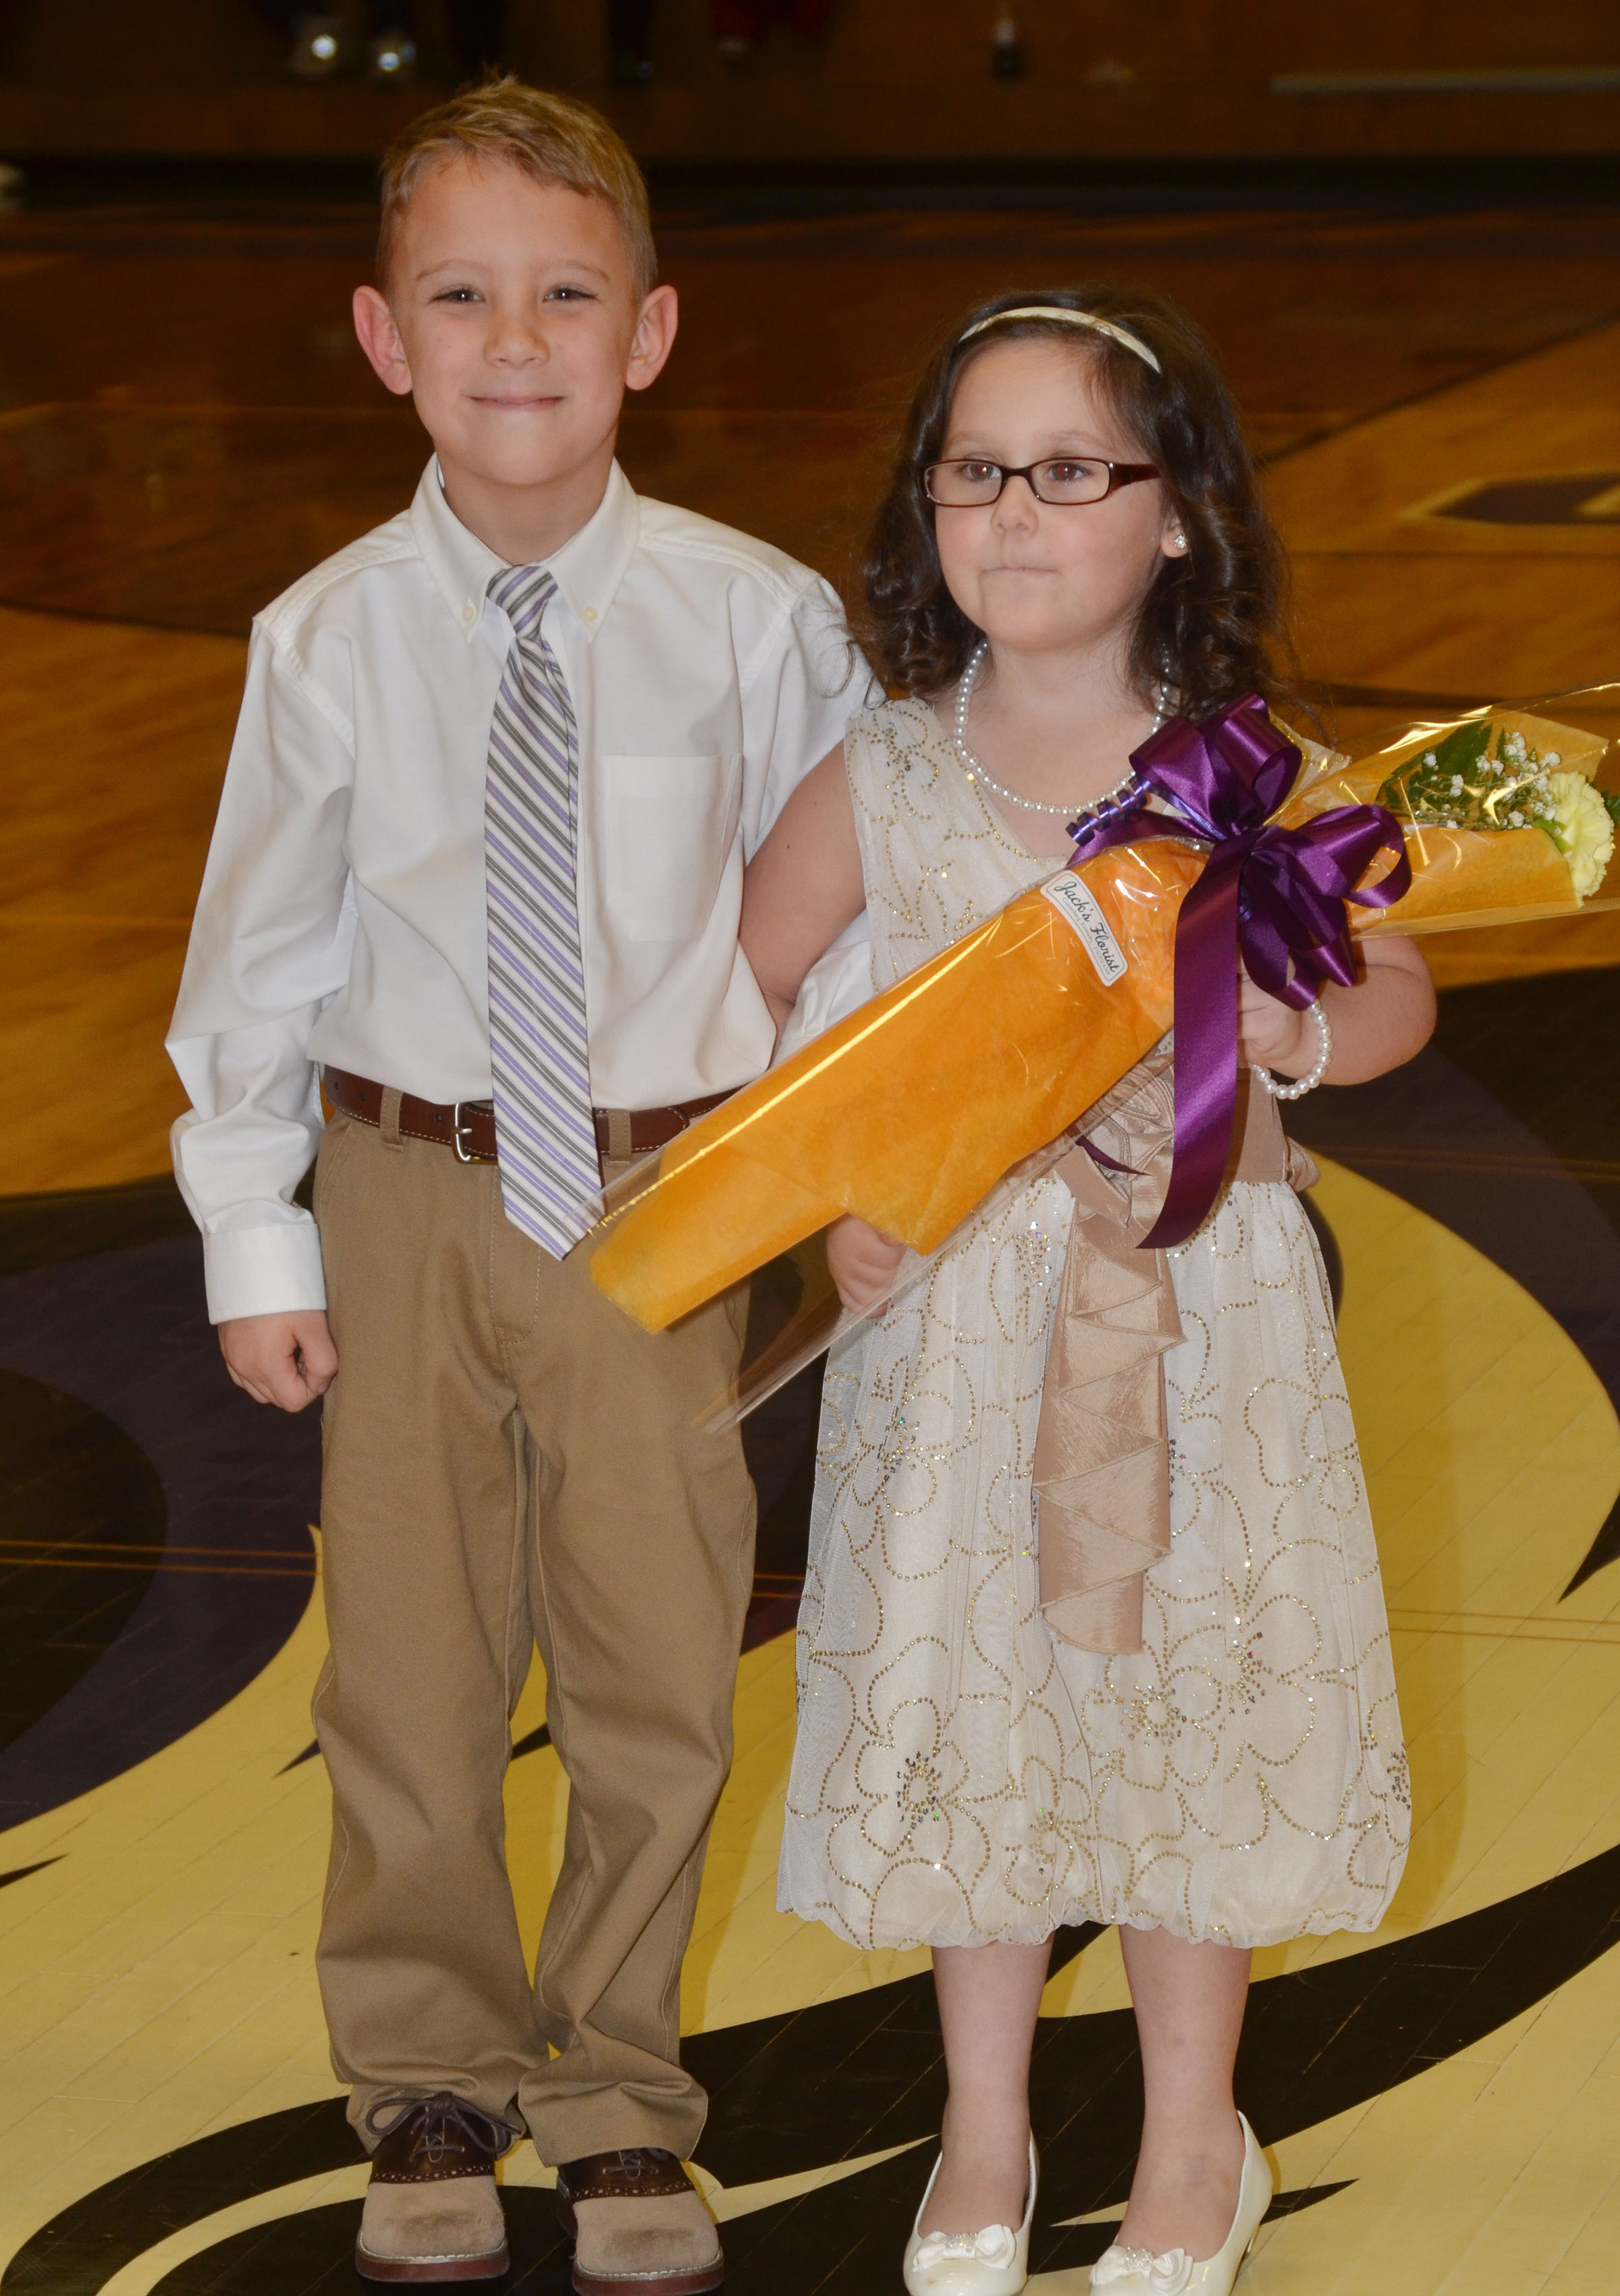 Campbellsville Elementary School first-grader Gabe Prior and kindergartener Trinity Clark were the crown bearers.